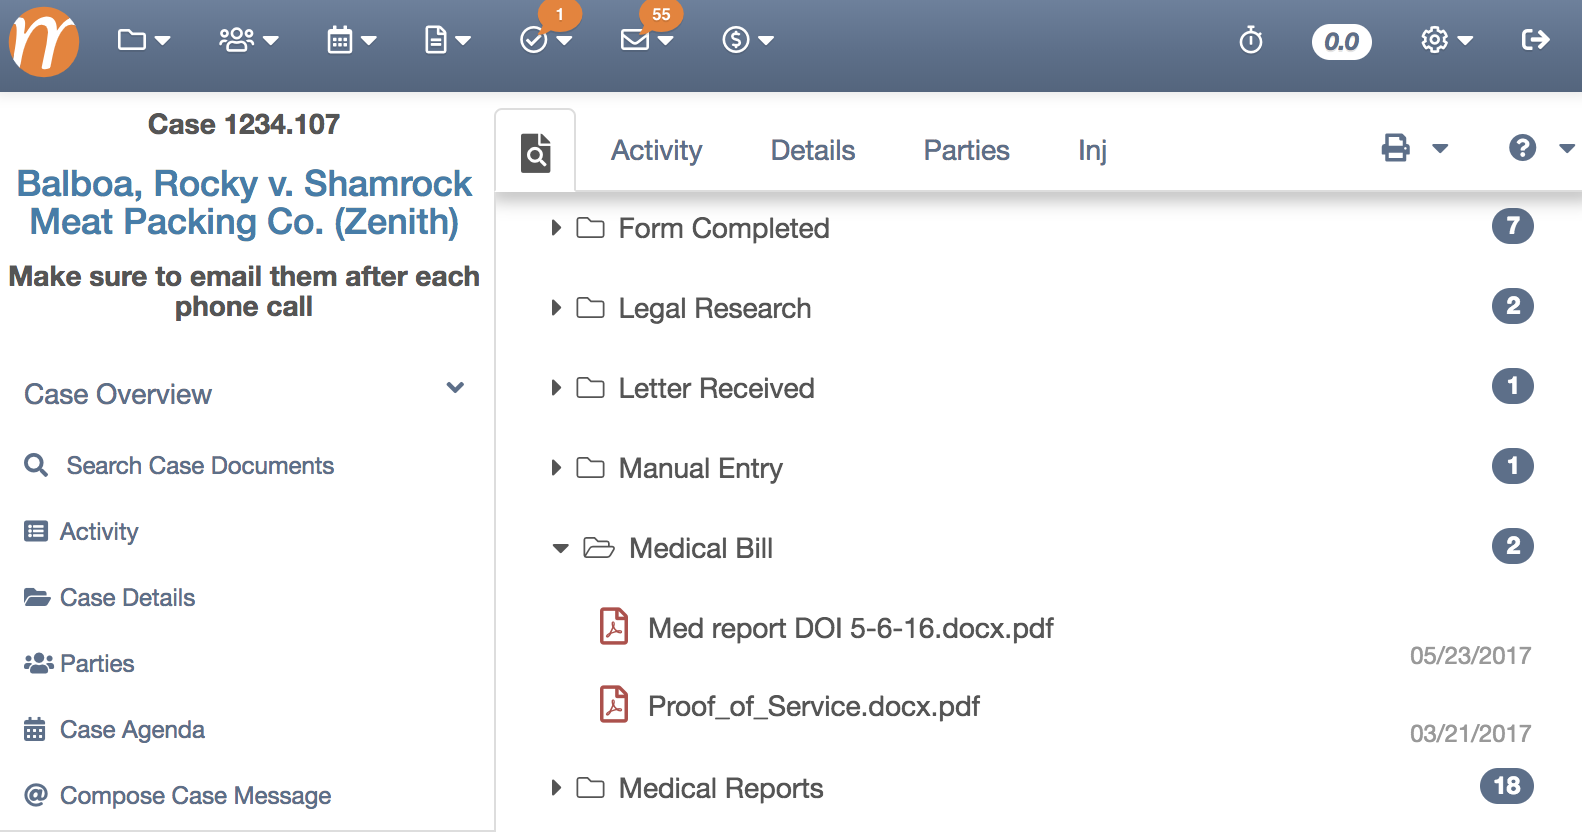 Document Folder View - Search Case Documents